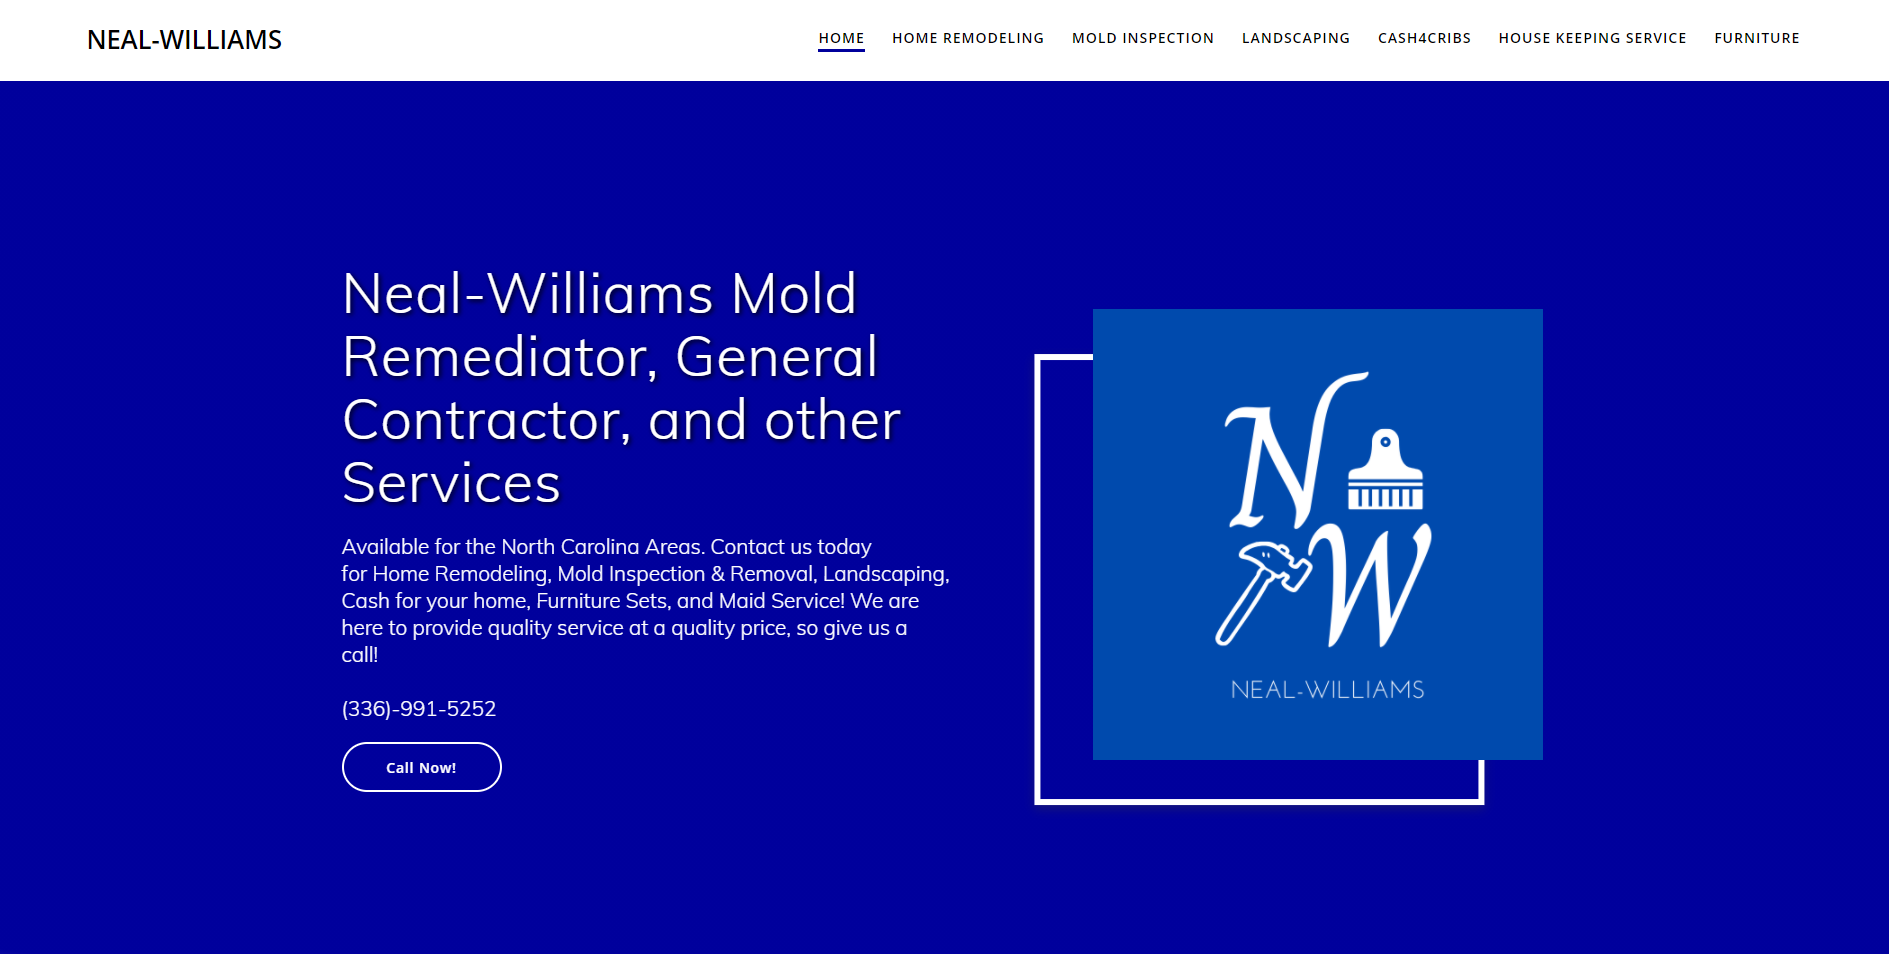 Neal Williams Mold Removal and general contractor